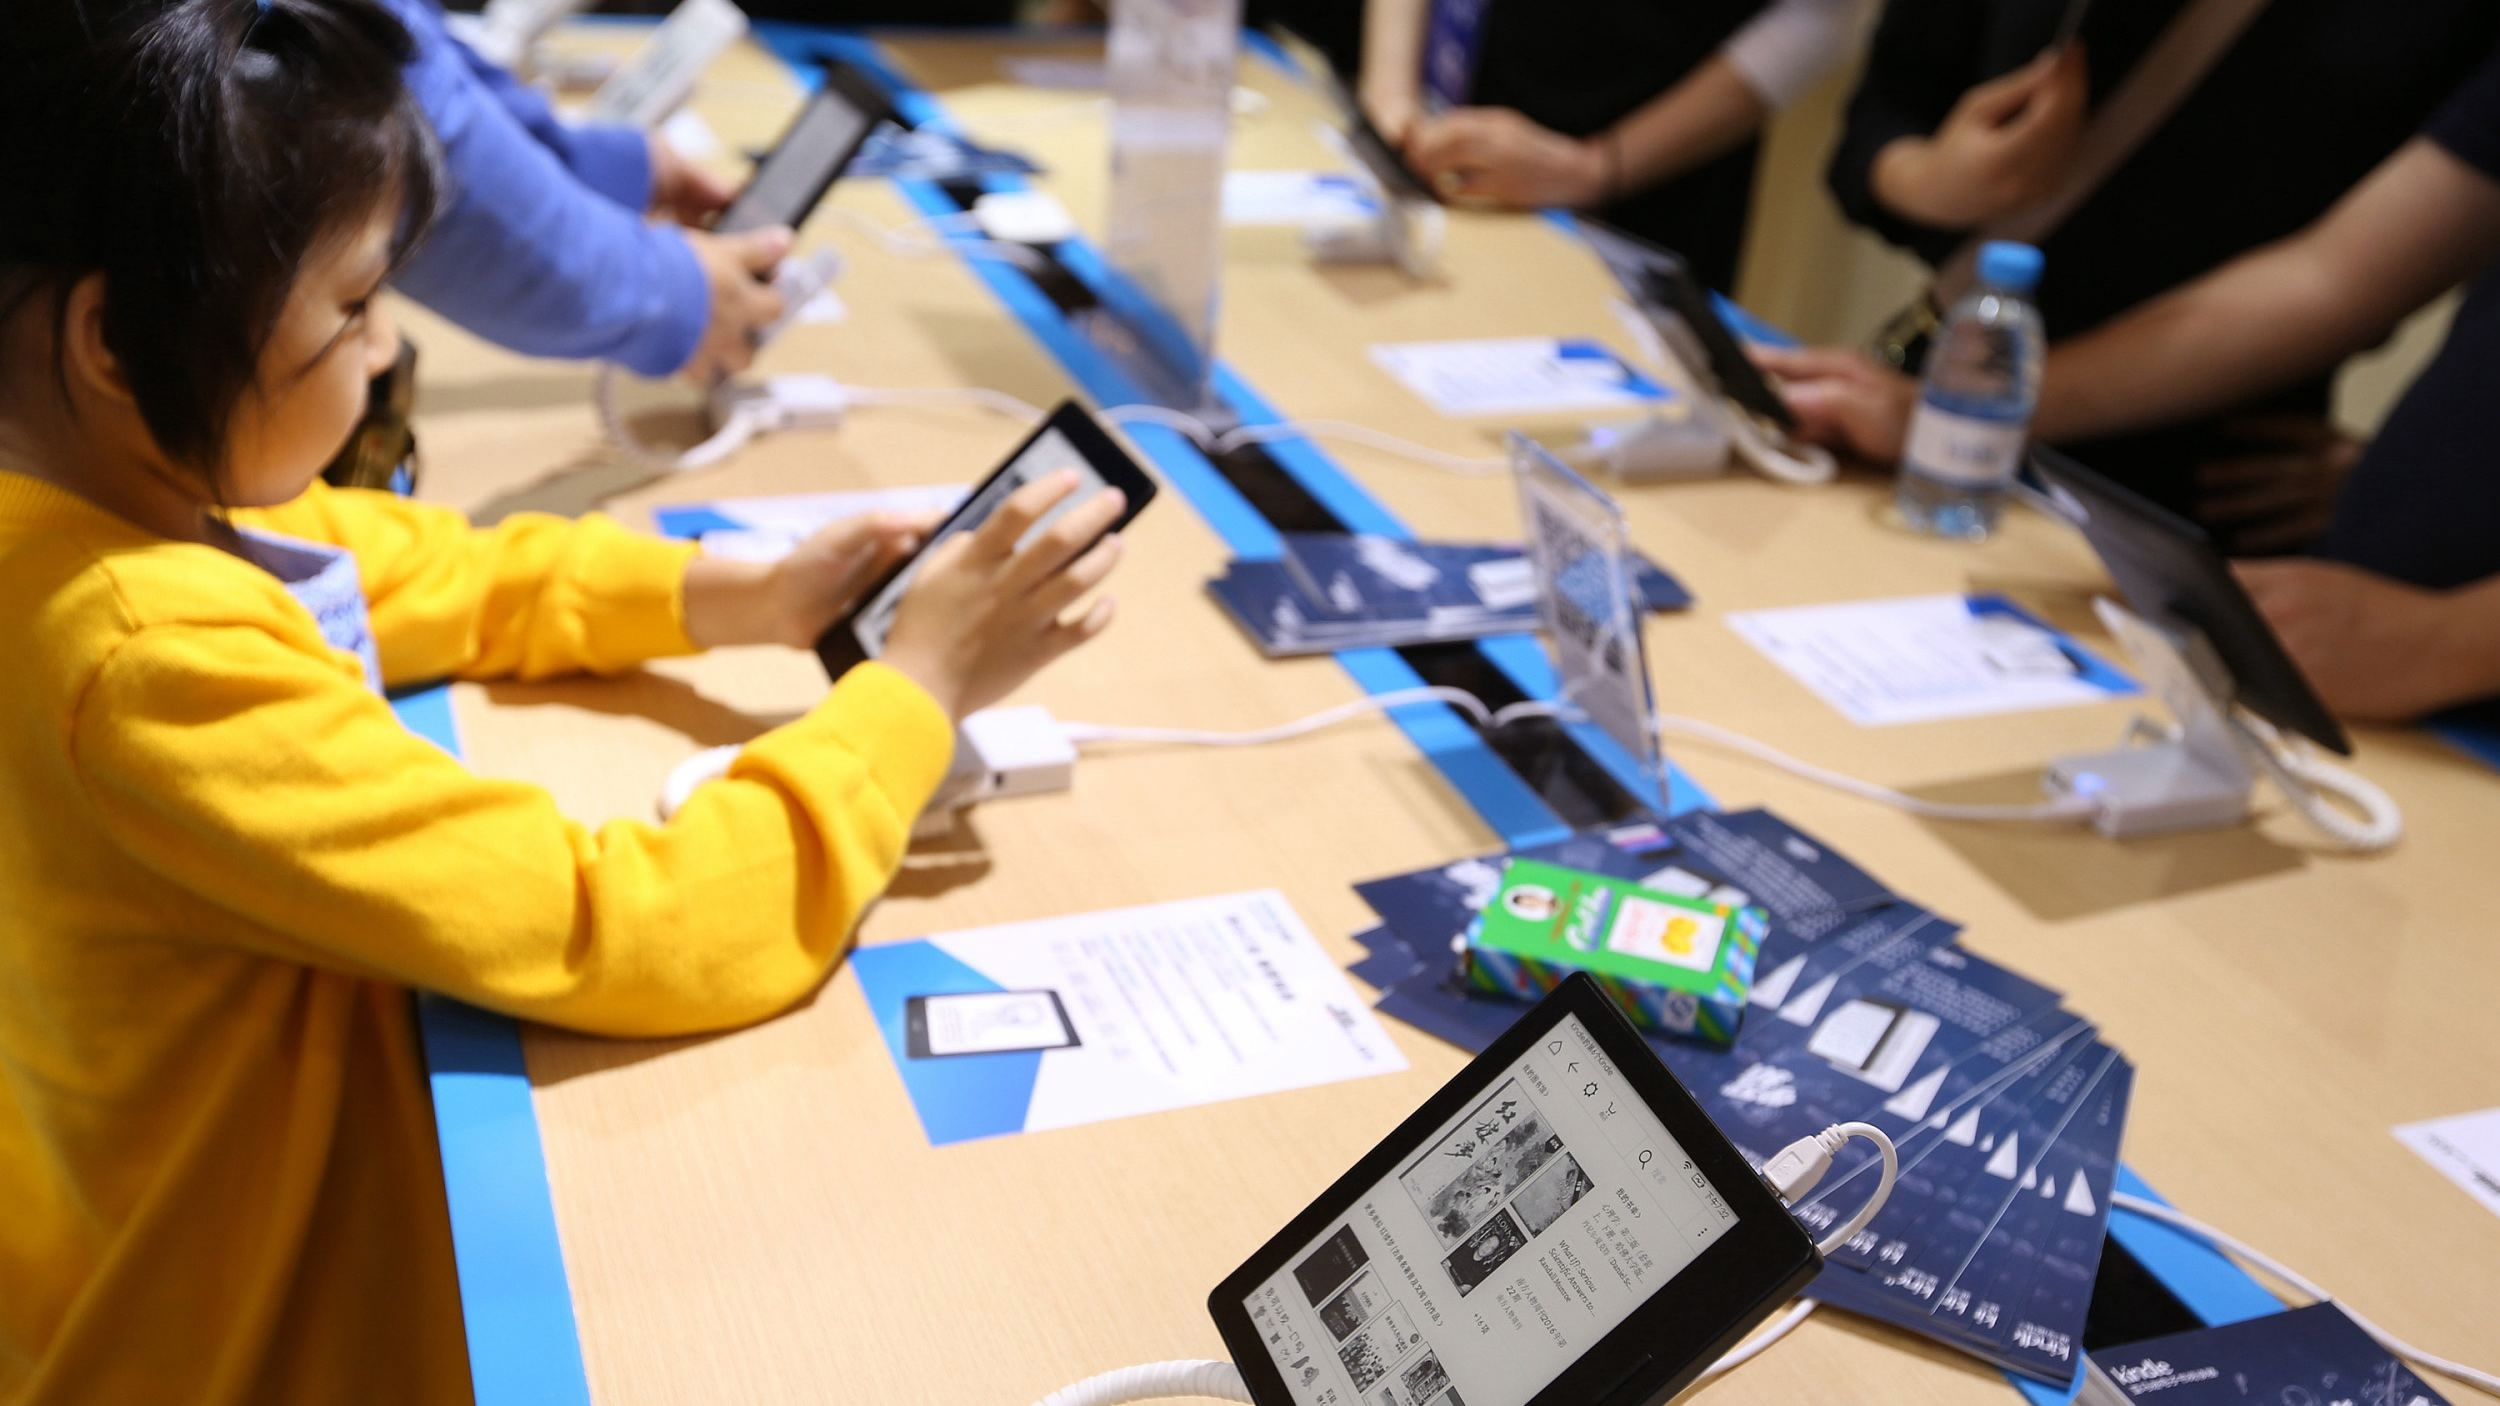 China's e-book market to hit $5.34 bln by 2020